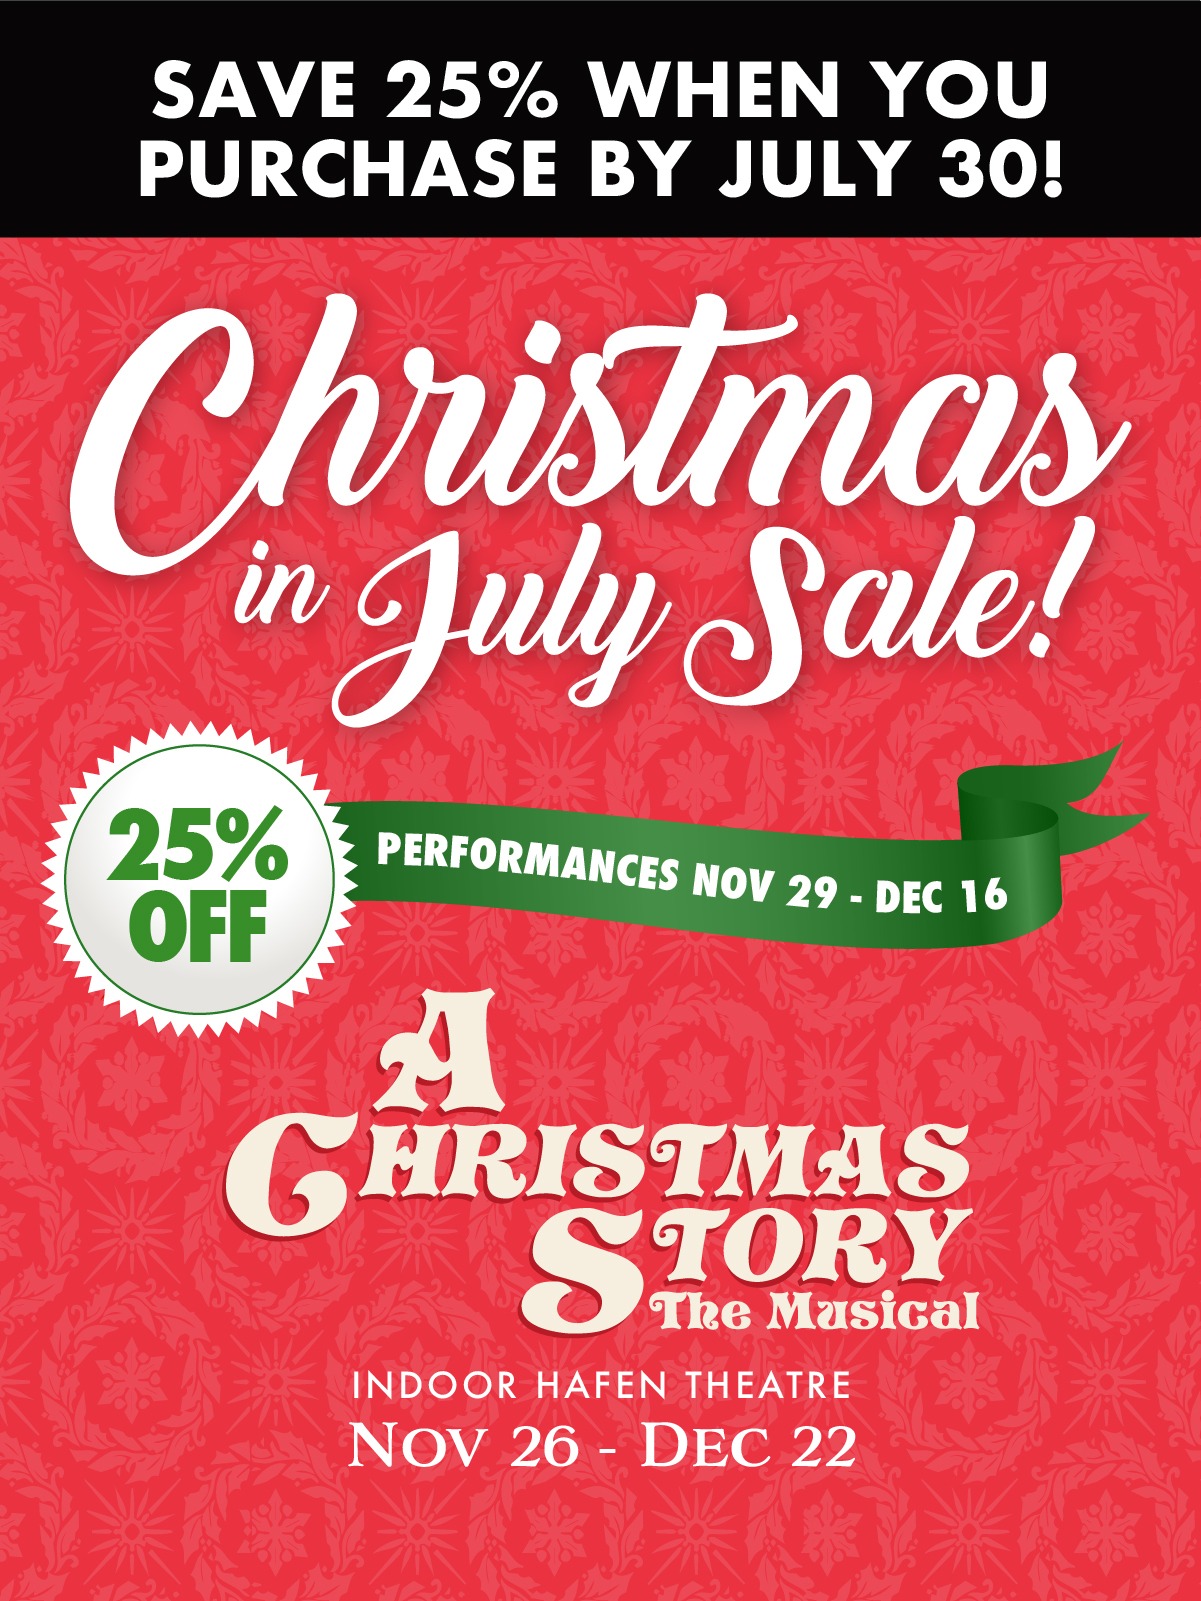 Christmas in July sale 2021